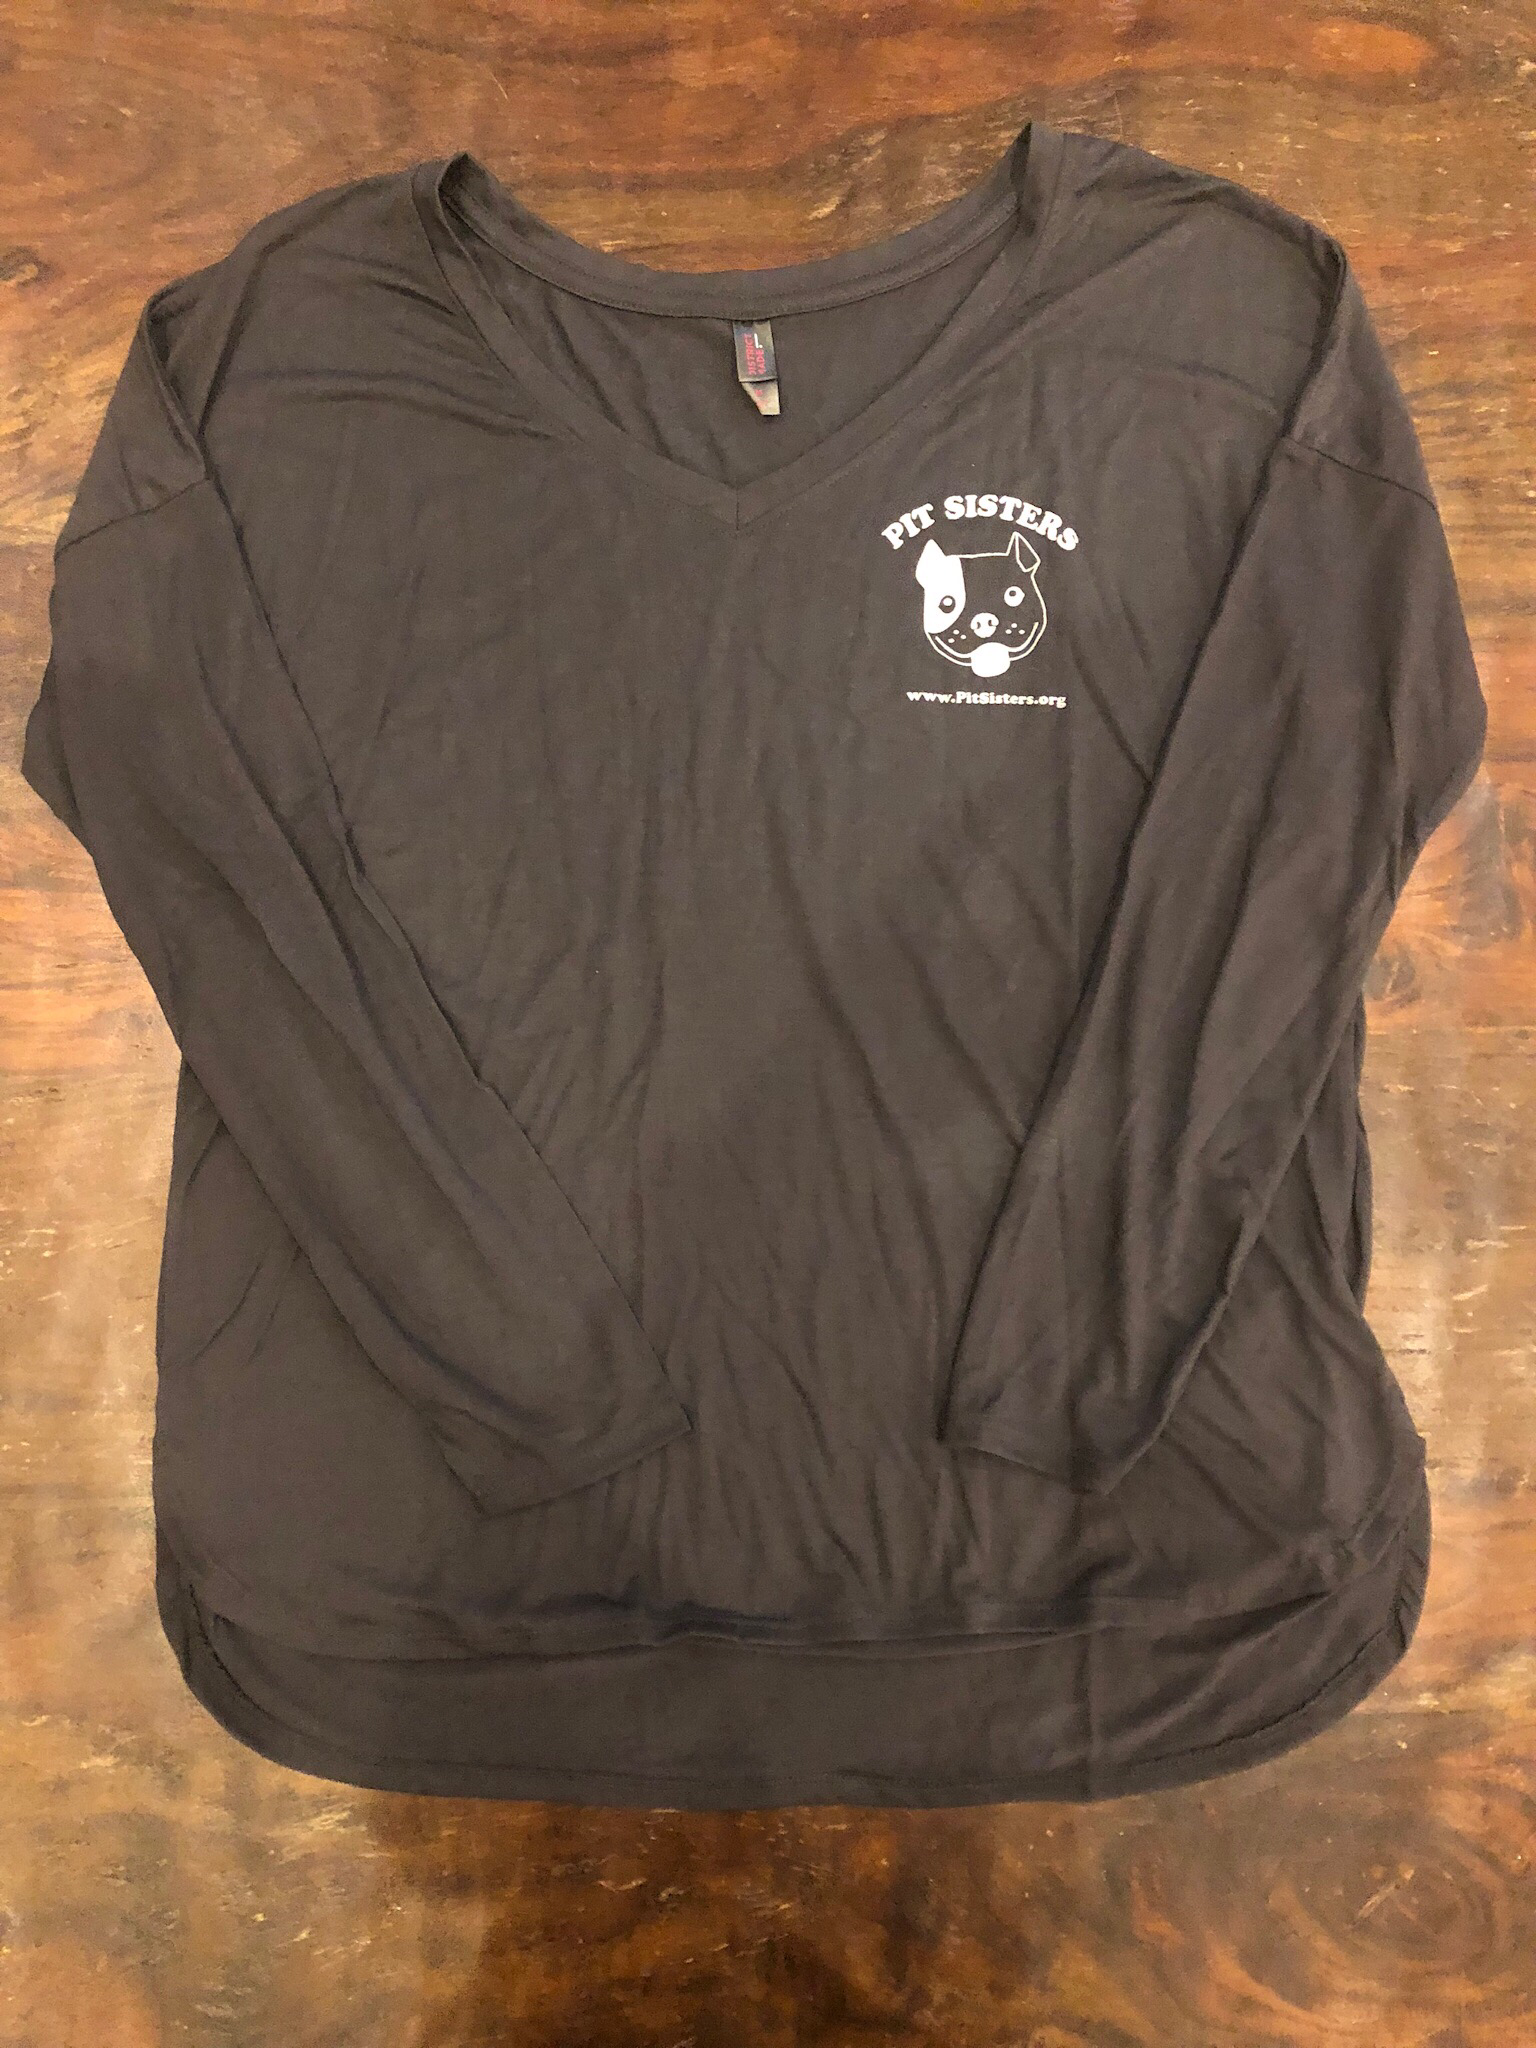 Gray long sleeved VNeck with Pit Sisters logo- Small 55694